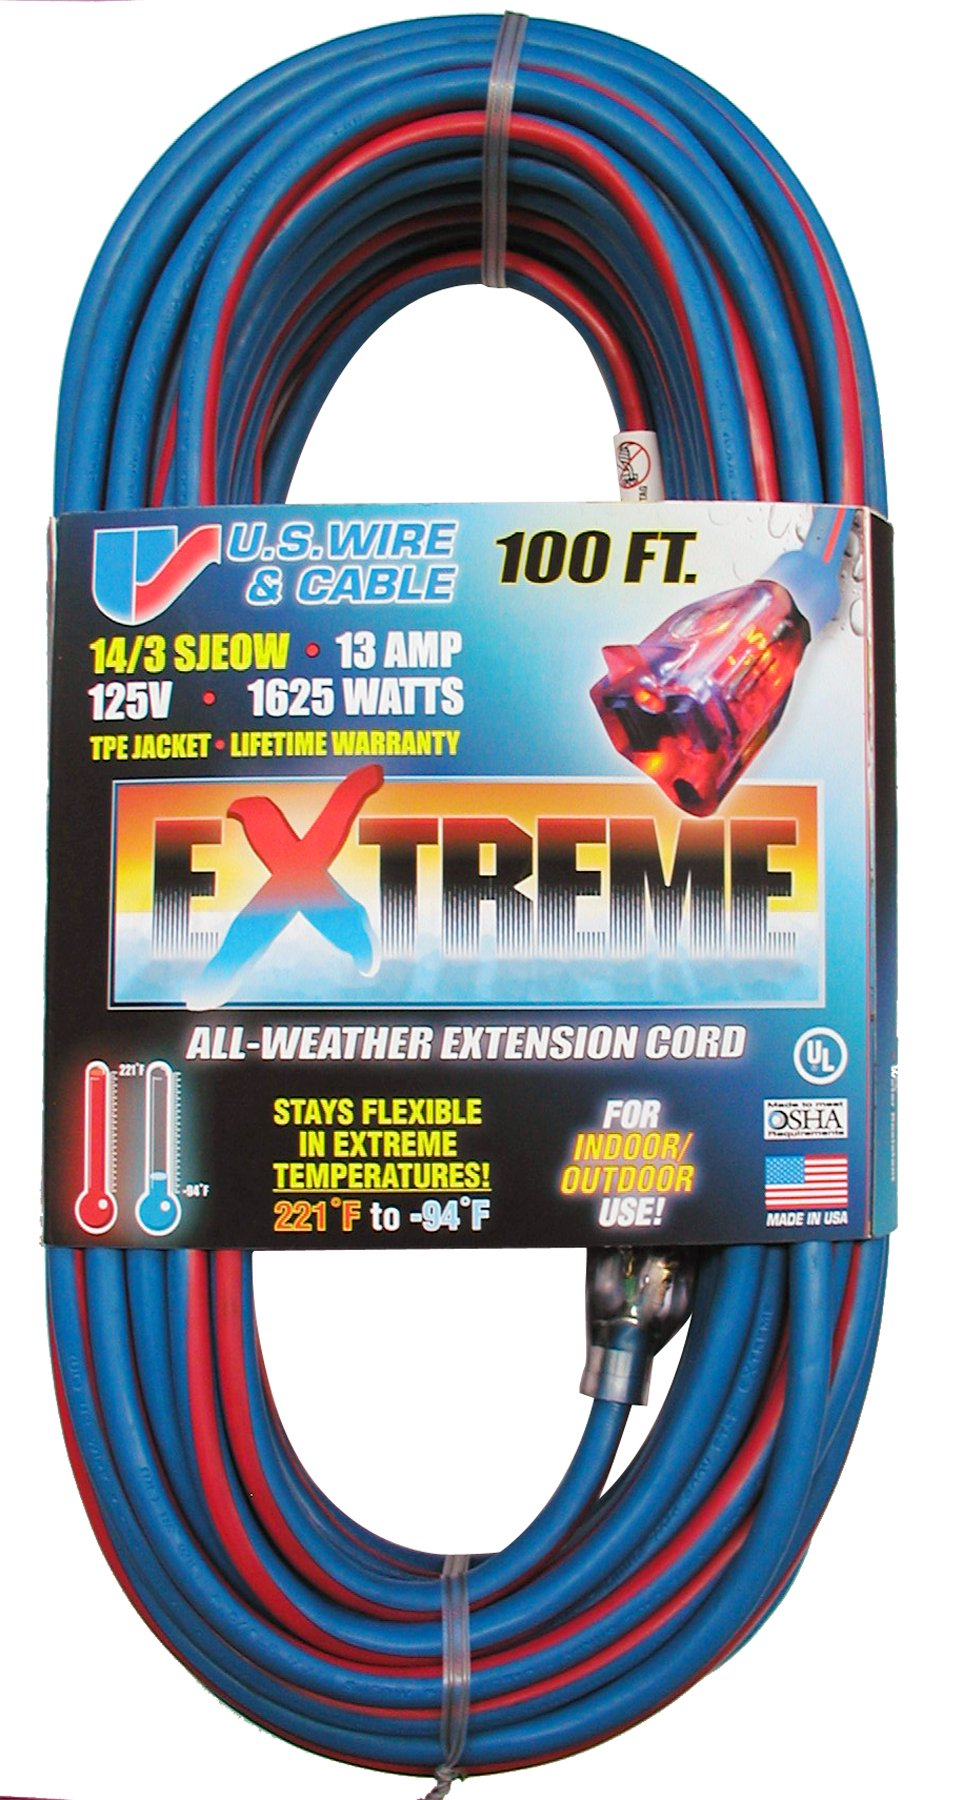 US Wire 98100 14/3 100-Foot SJEOW TPE Cold Weather Extension Cord Blue with Lighted Plug by U.S. Wire & Cable